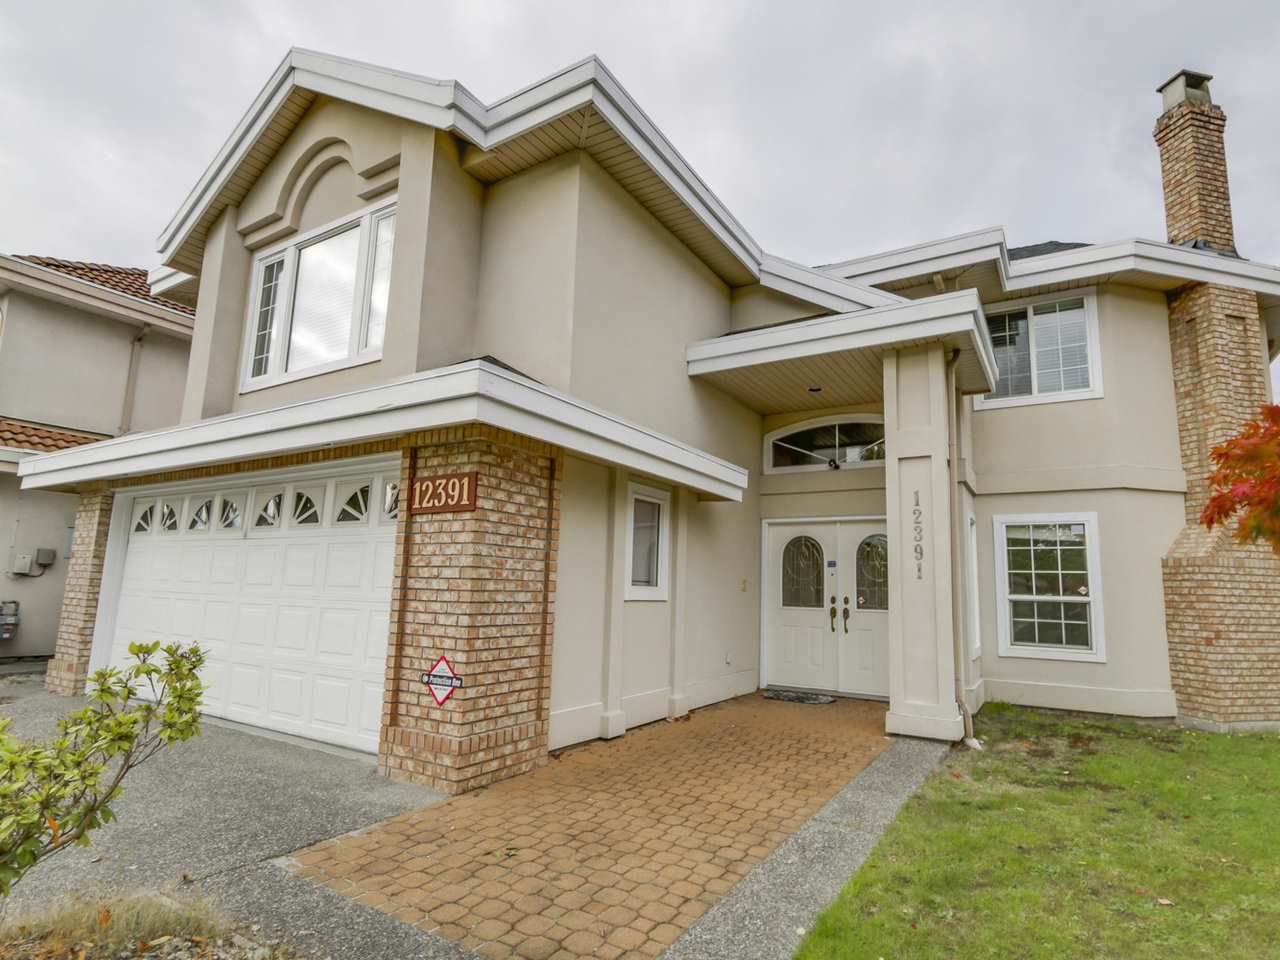 """Main Photo: 12391 JENSEN Drive in Richmond: East Cambie House for sale in """"CALIFORNIA POINT"""" : MLS®# R2130694"""